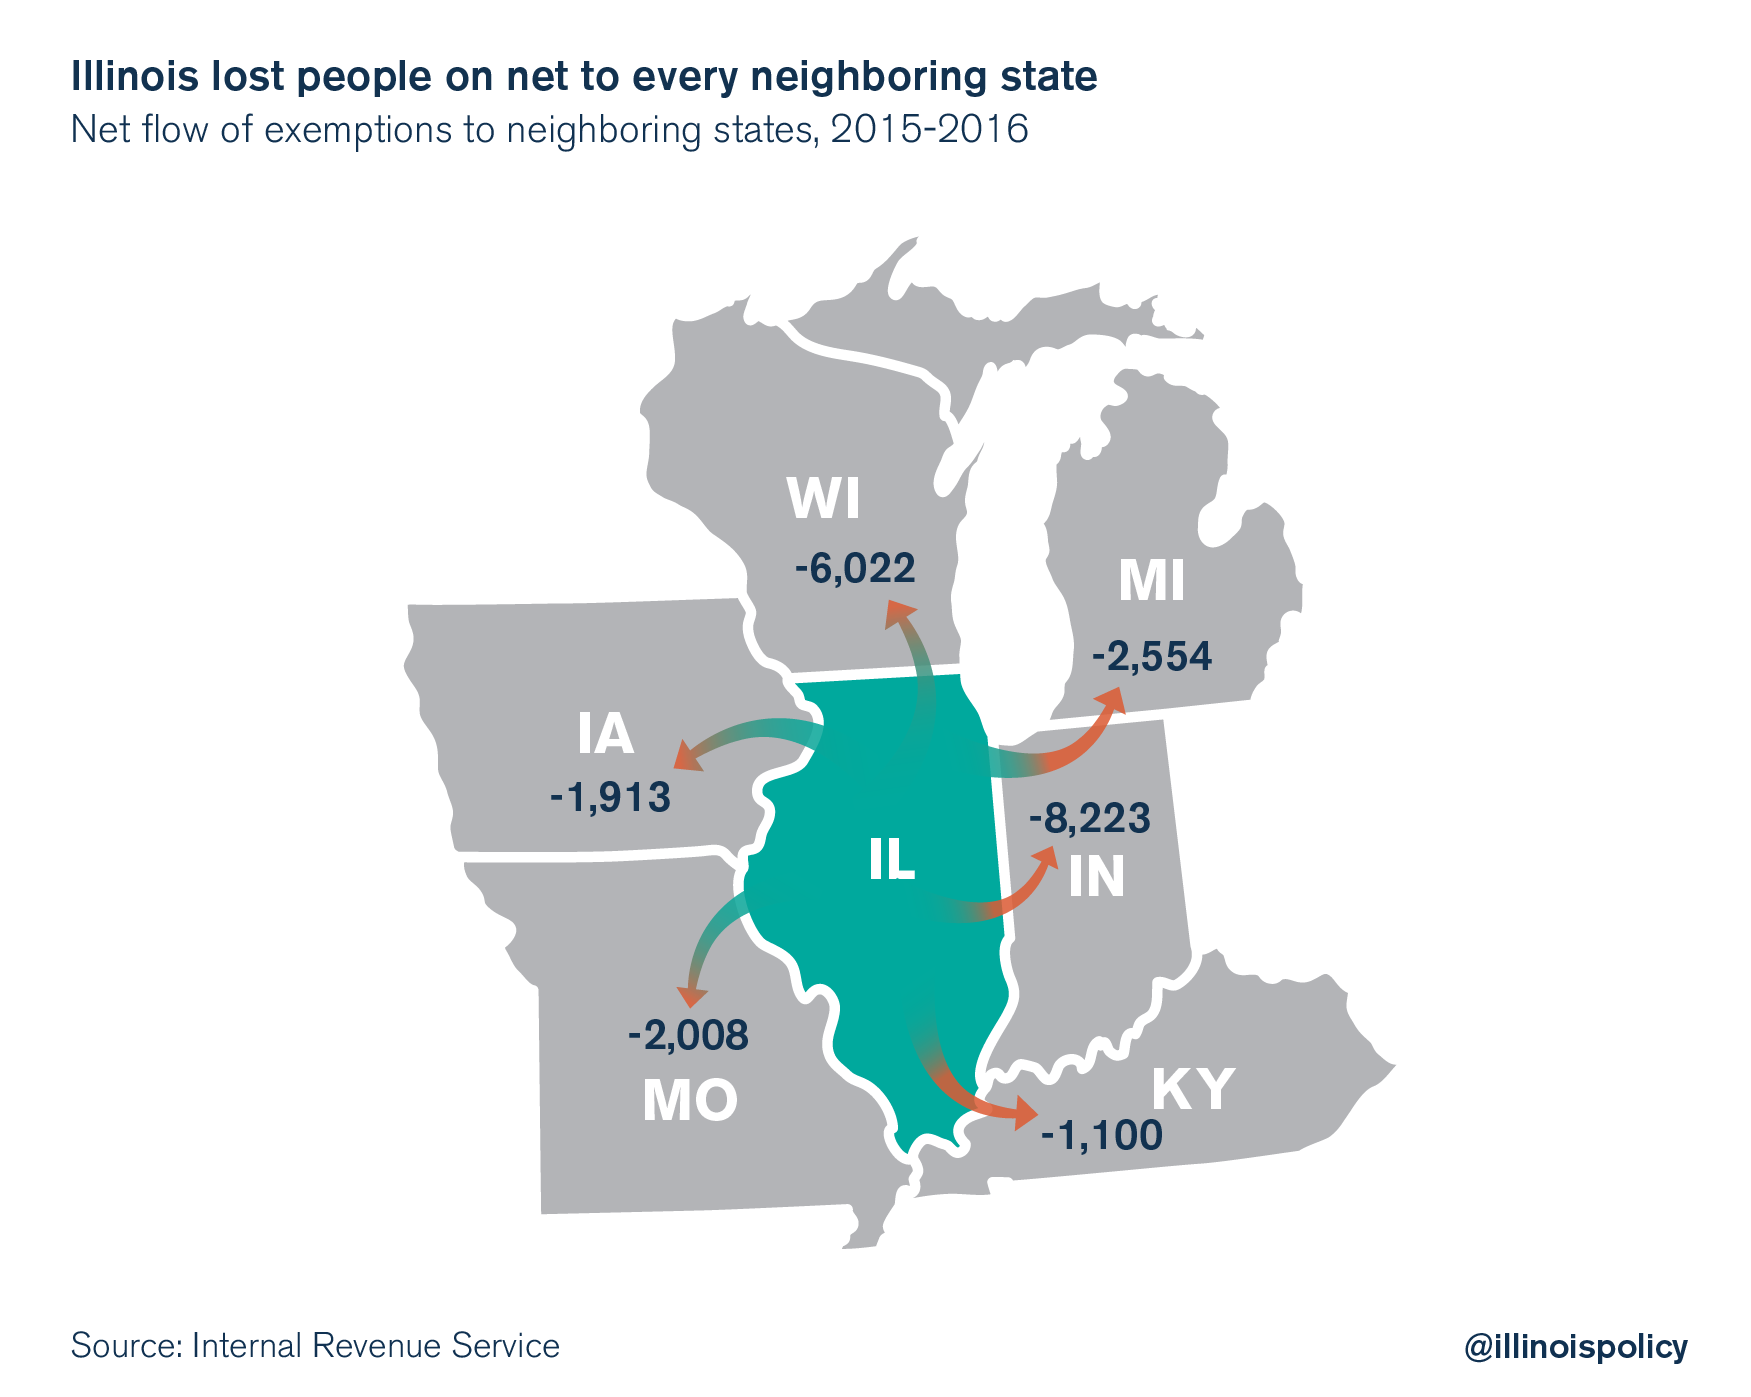 Illinois lost people on net to every neighboring state